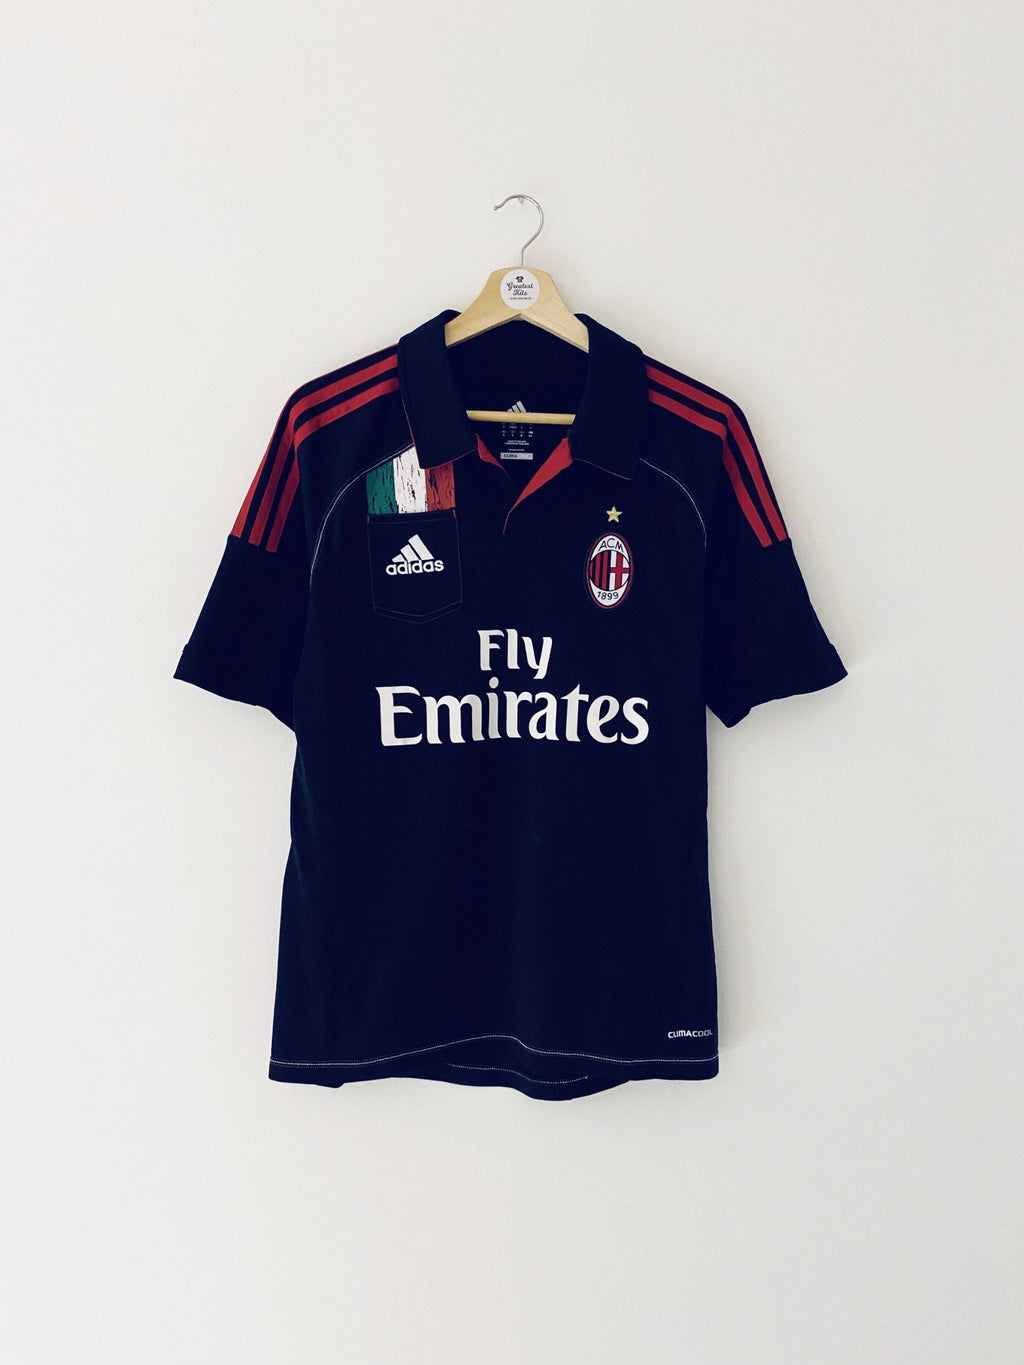 2012/13 AC Milan Third Shirt (S) 9/10